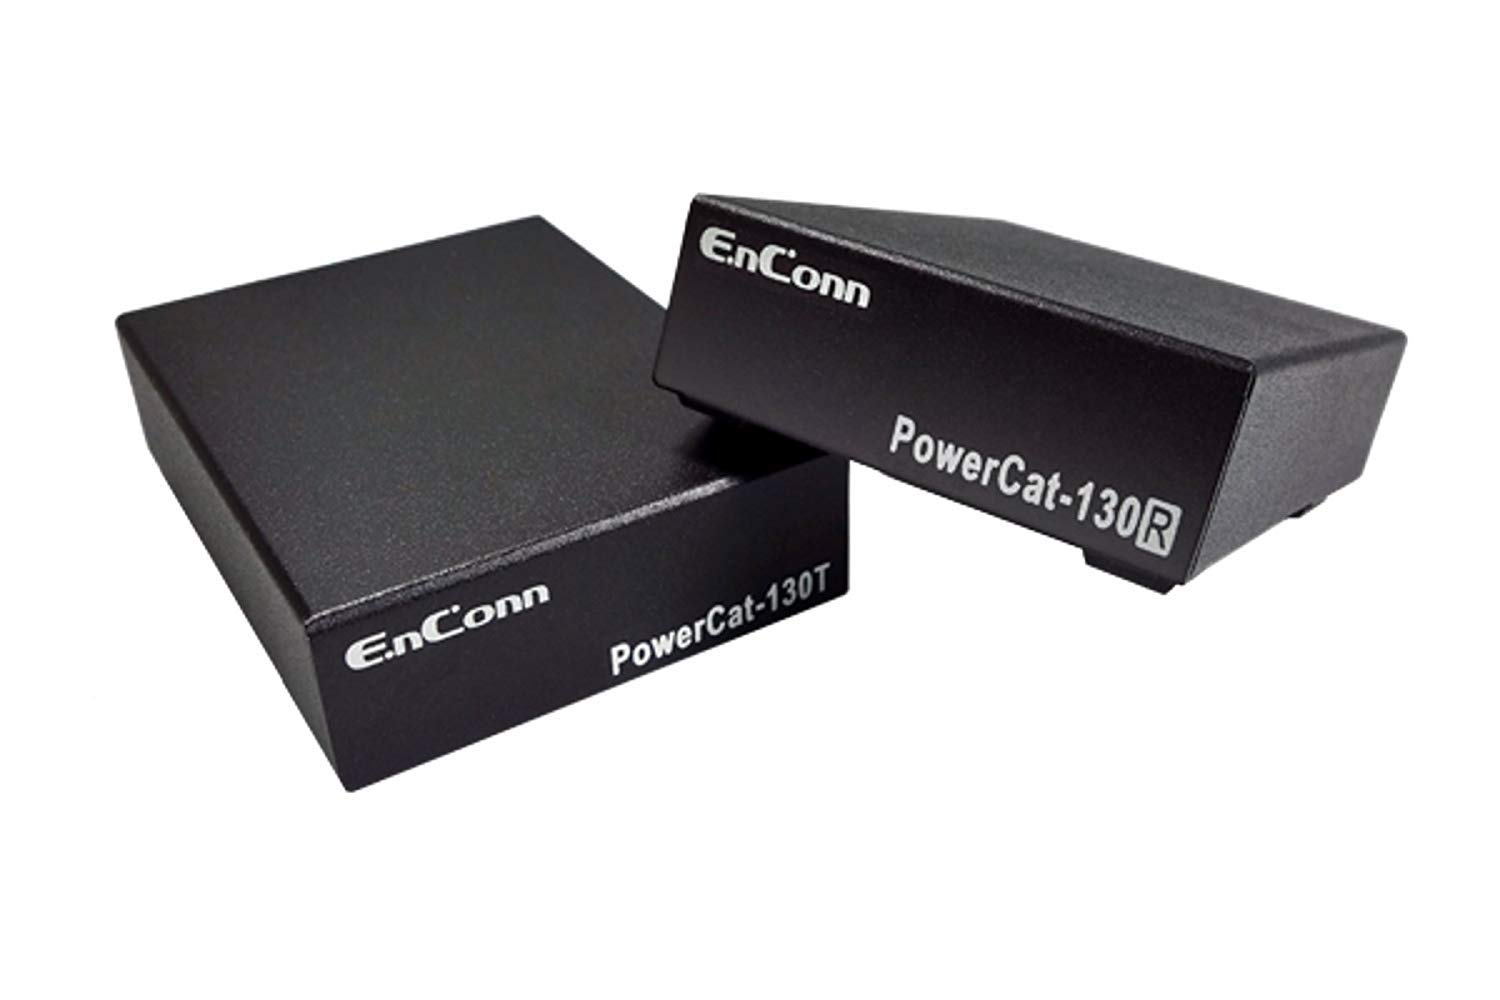 enconn powercat-130 enconn Poeエクステンダー B01CPUS7RA B01CPUS7RA, 鹿児島郡:8a9bef5e --- gamenavi.club